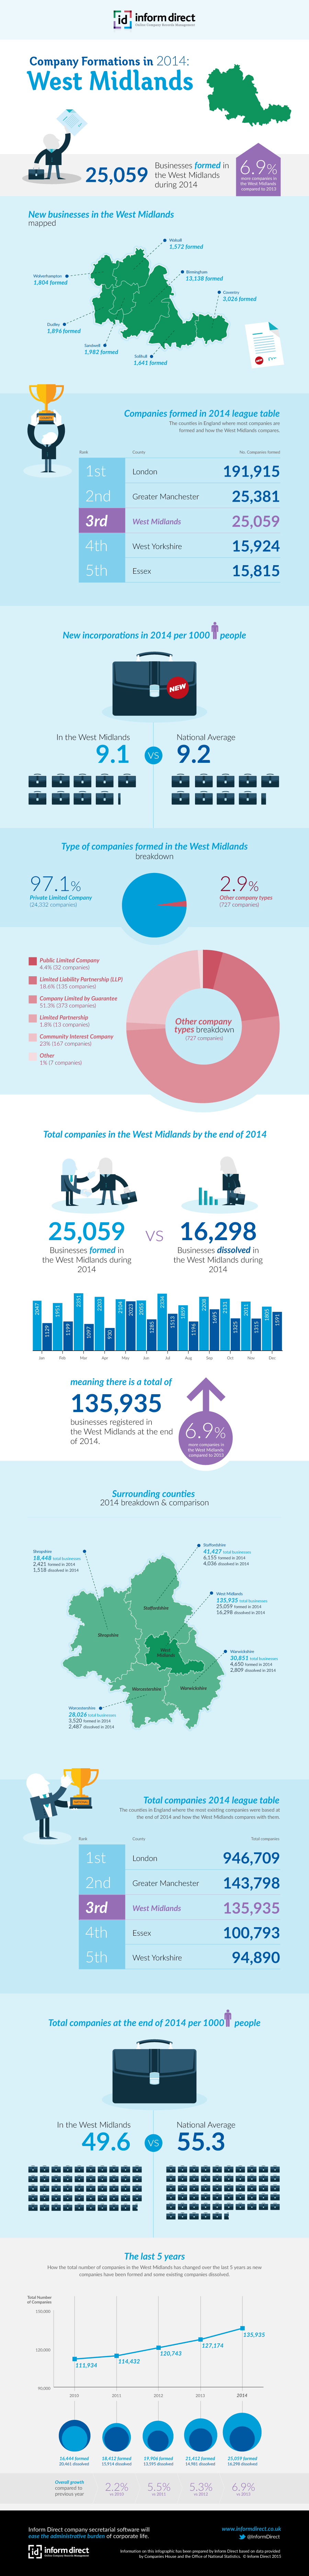 Inform Direct - Company Formations in the West Midlands 2014 Infographic